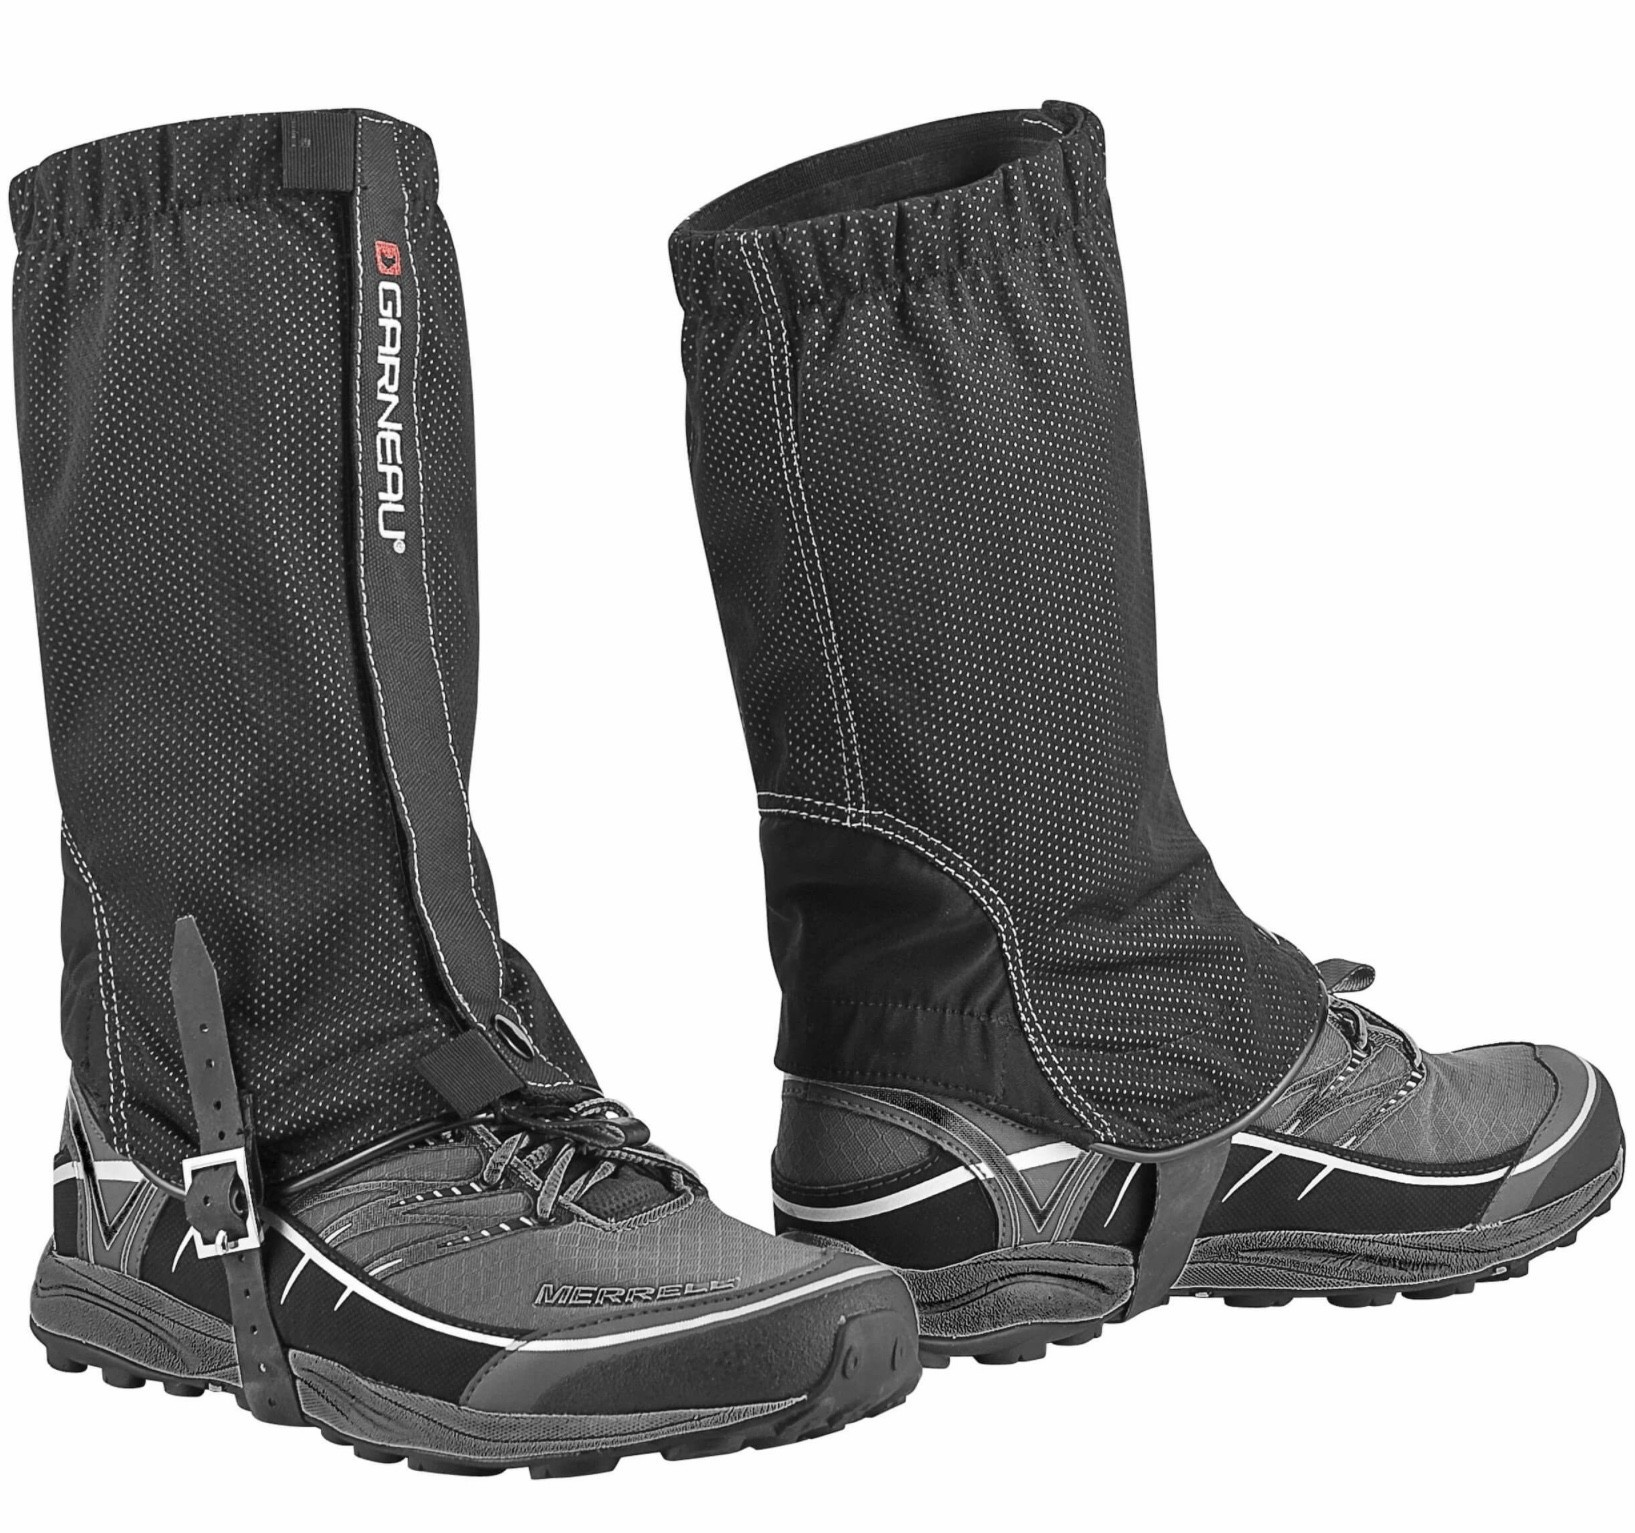 GARNEAU HK-2000 GAITERS BLACK